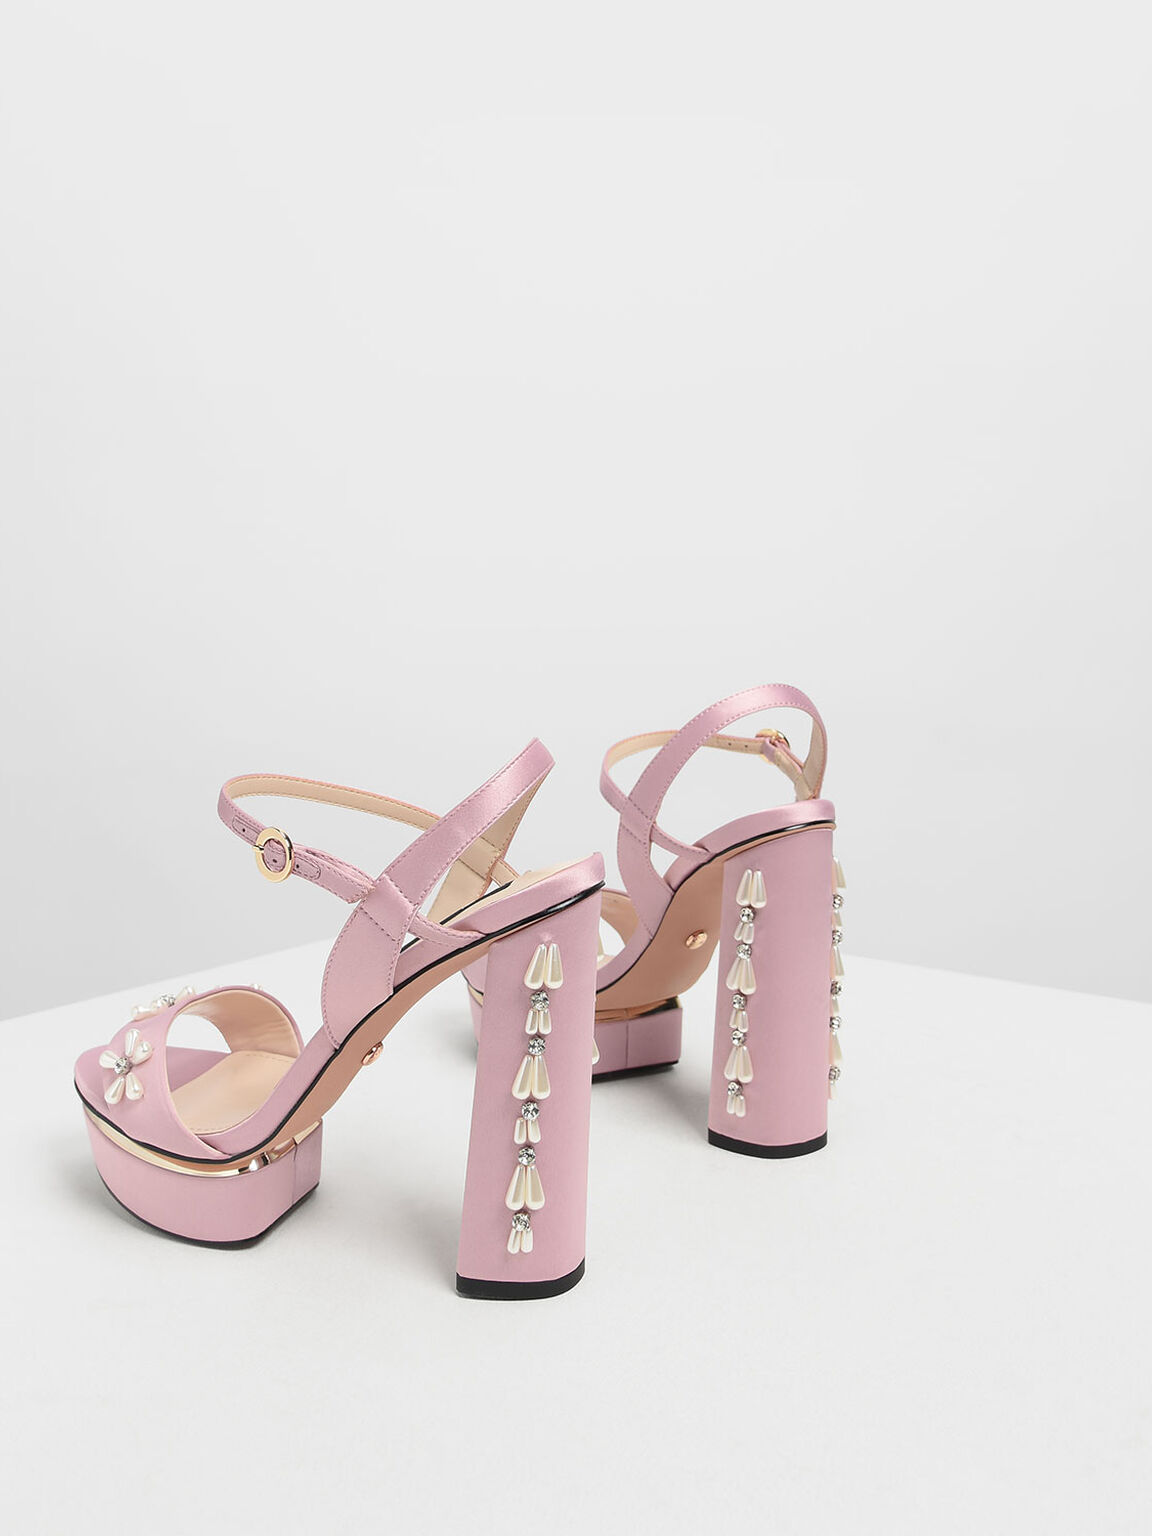 Floral Embellished Satin Platforms, Pink, hi-res